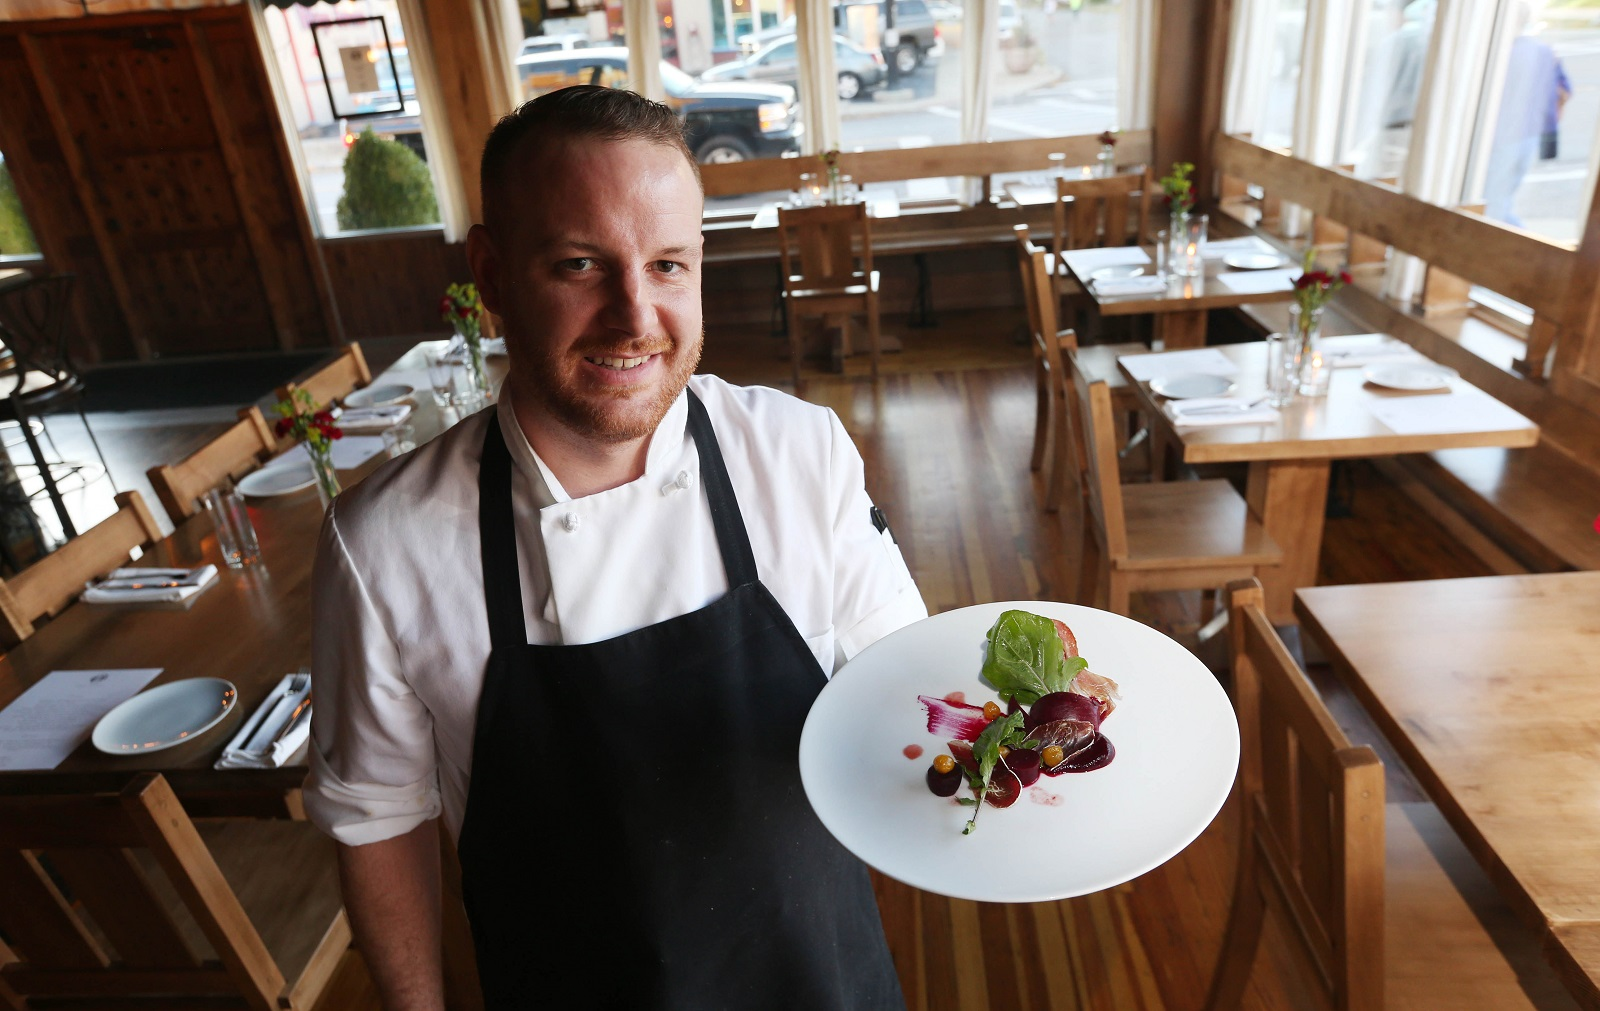 Carte Blanche owner and chef Andrew Murtha presents the beet salad. (Sharon Cantillon/Buffalo News)